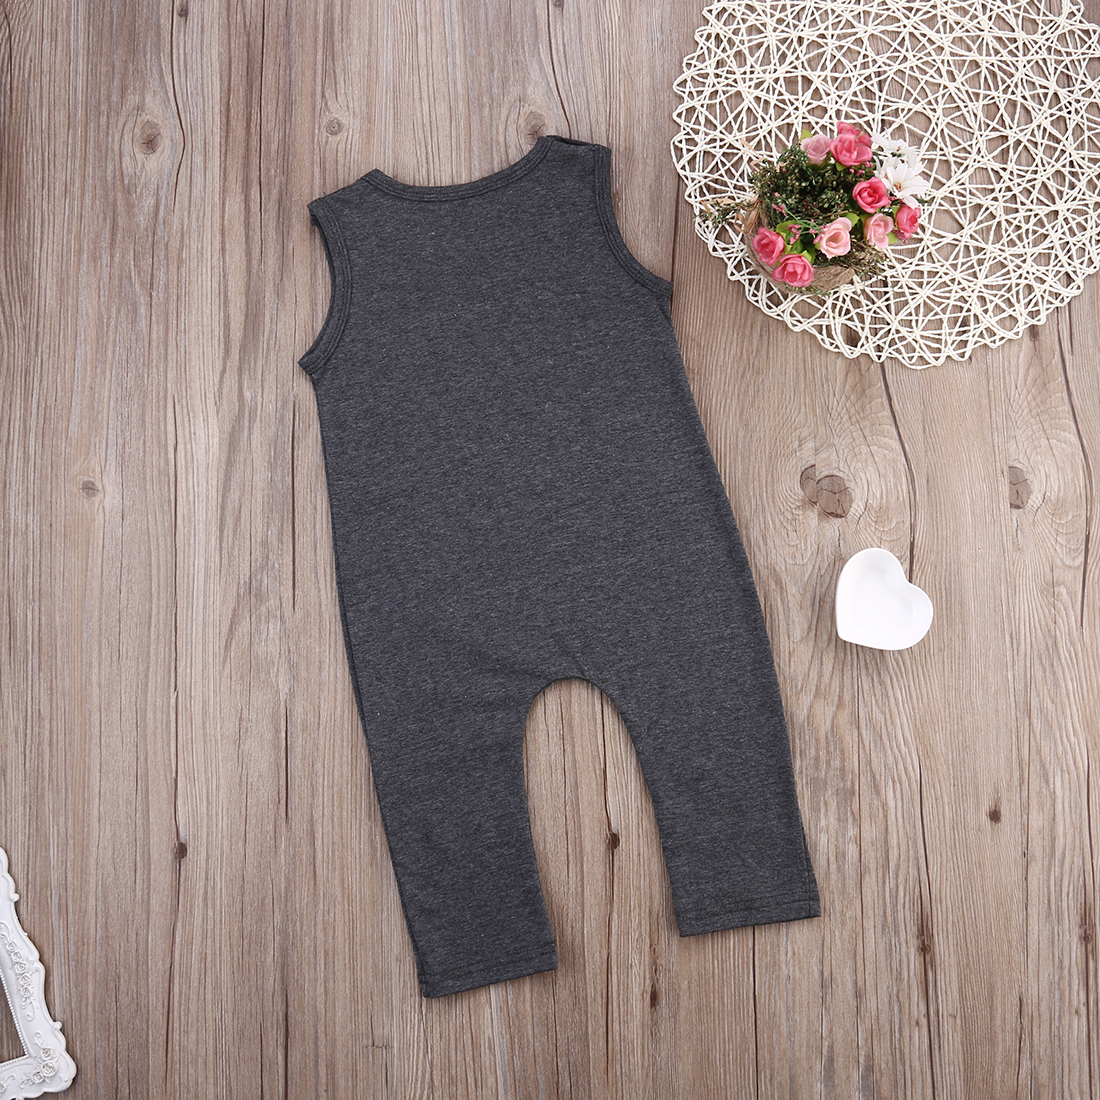 Toddler-Baby-Girl-Boy-Clothes-Sleeveless-Romper-Jumpsuit-Playsuit-Outfits-Costume-1